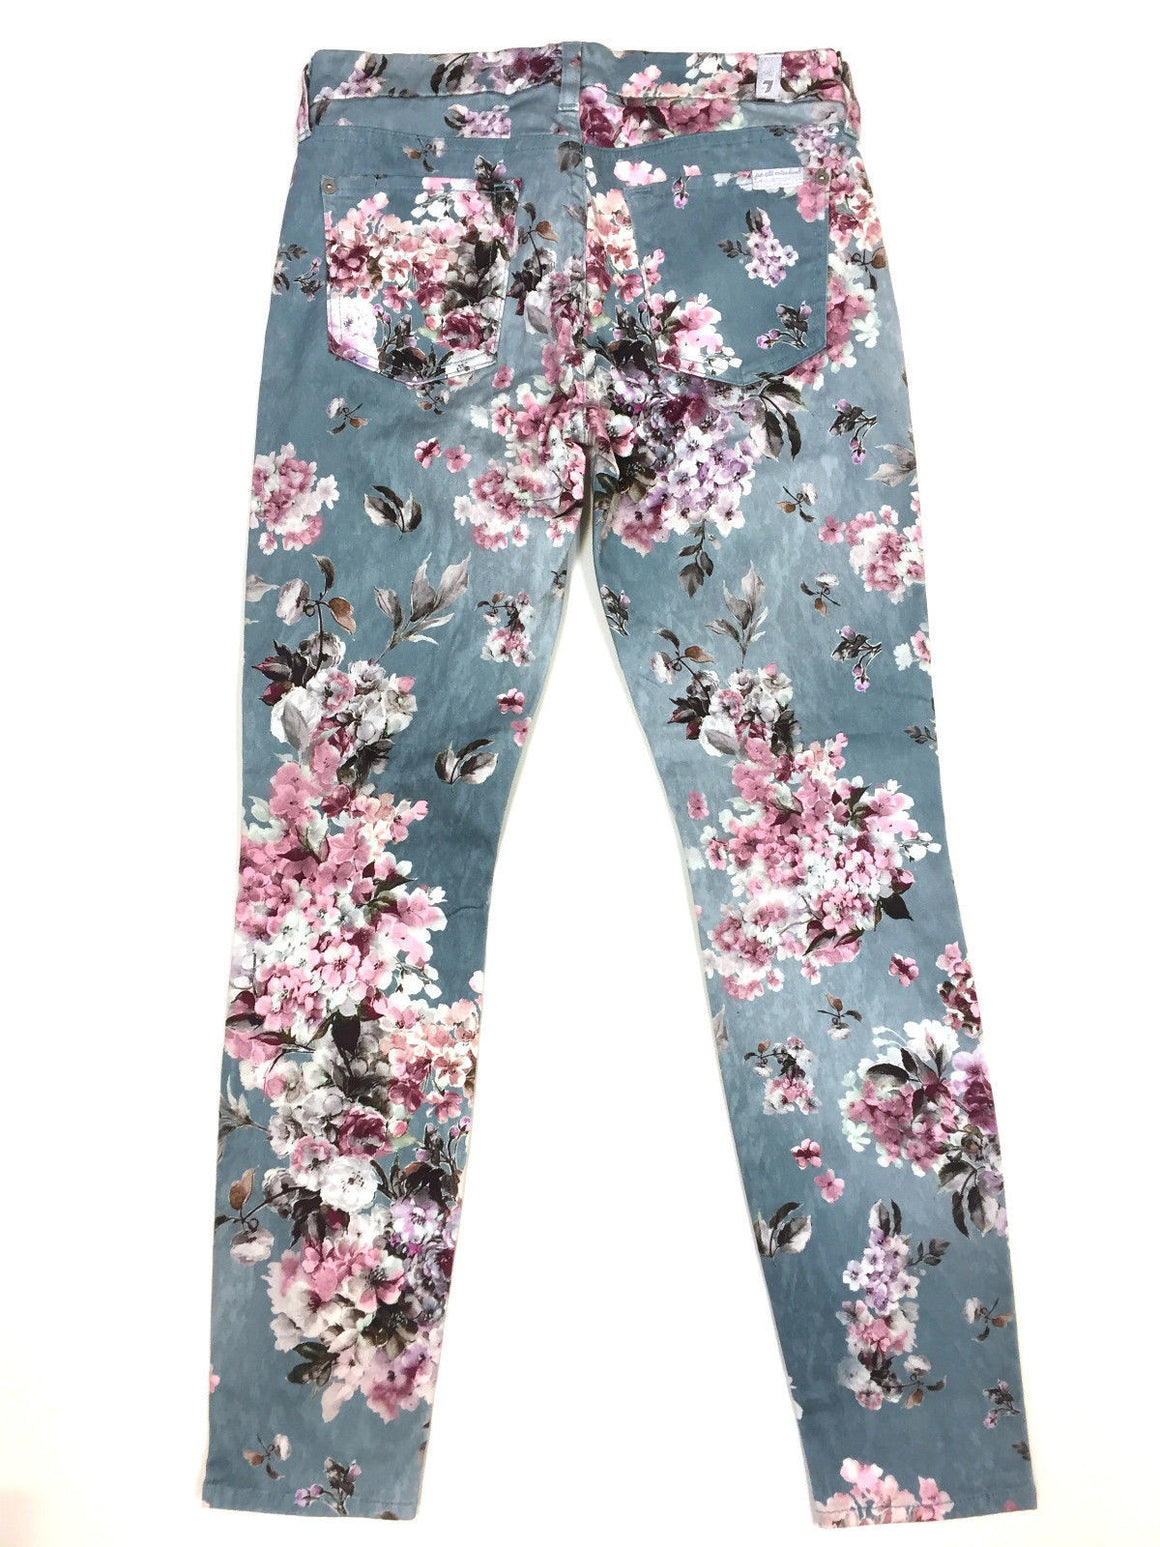 bisbiz.com SEVEN FOR ALL MANKIND Aqua-Blue/Multicolor Floral-Print Skinny Jeans Size: 27 / 4/6 - Bis Luxury Resale